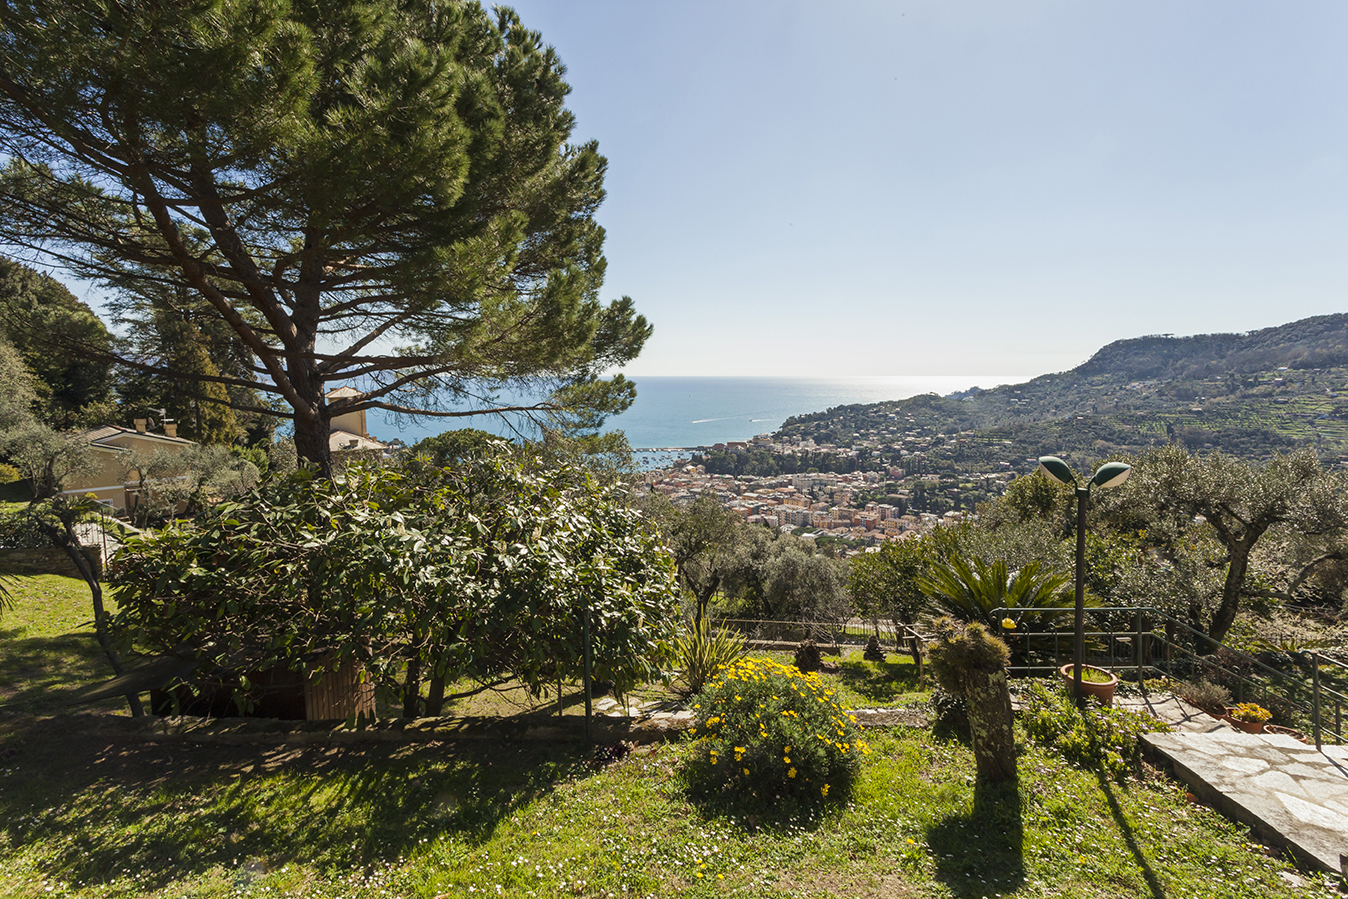 Maison unifamiliale pour l Vente à Exsclusive villa with breathtaking view via Aurelia Santa Margherita Ligure, Genoa 16038 Italie